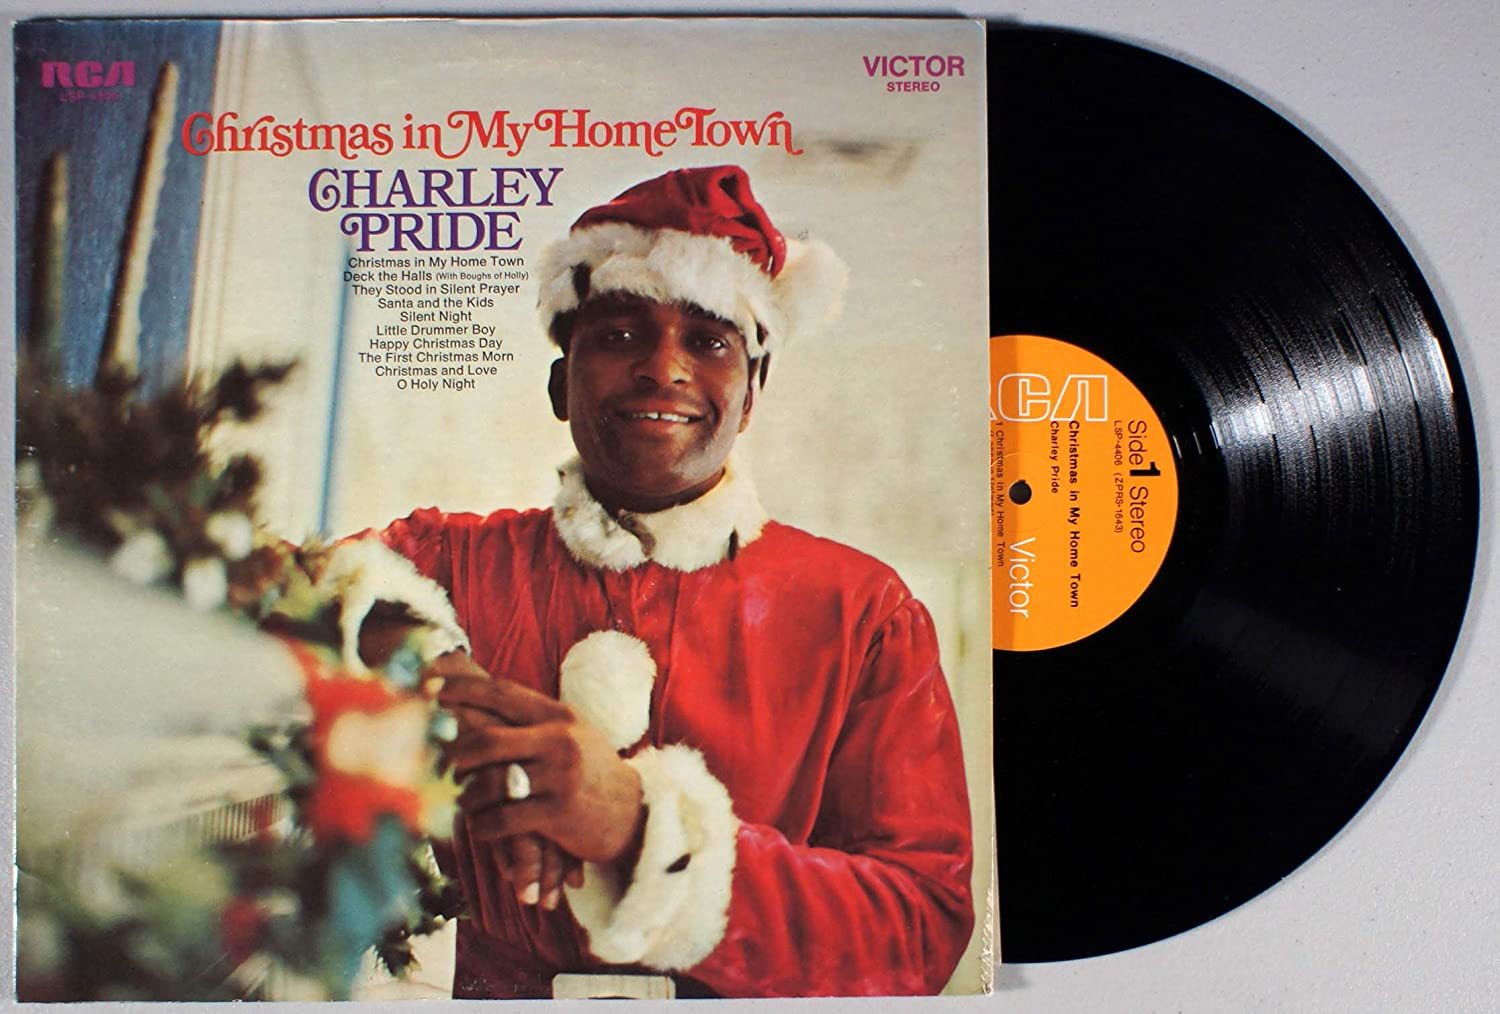 Christmas in My Home Town - CHARLEY PRIDE